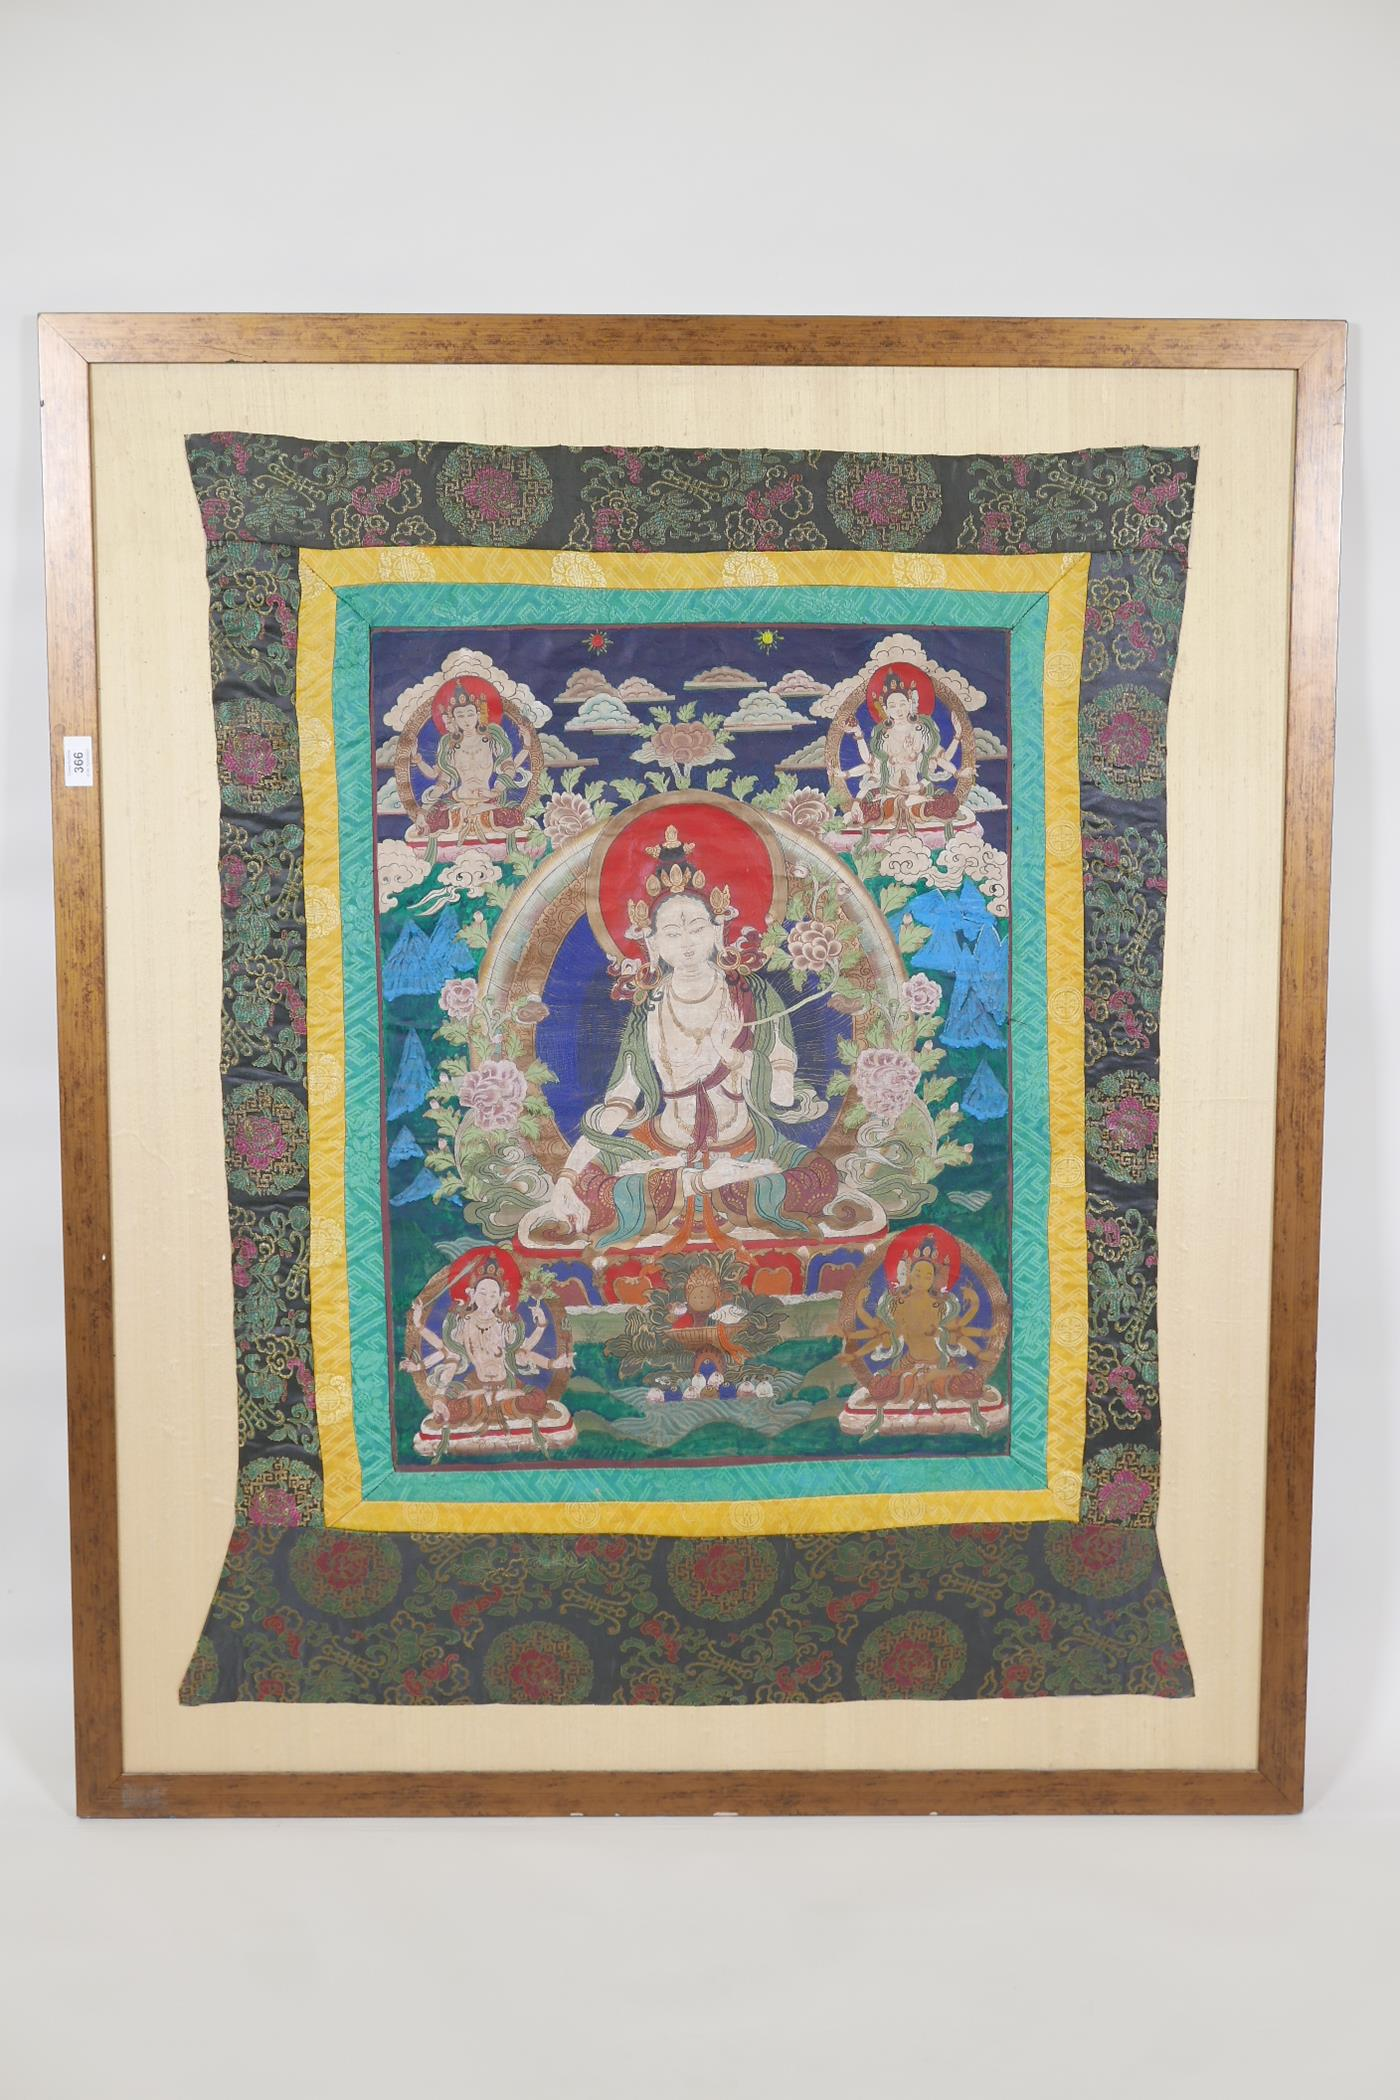 A Sino-Tibetan printed thangka depicting various facets of Buddha, with hand painted embellishments, - Image 2 of 2